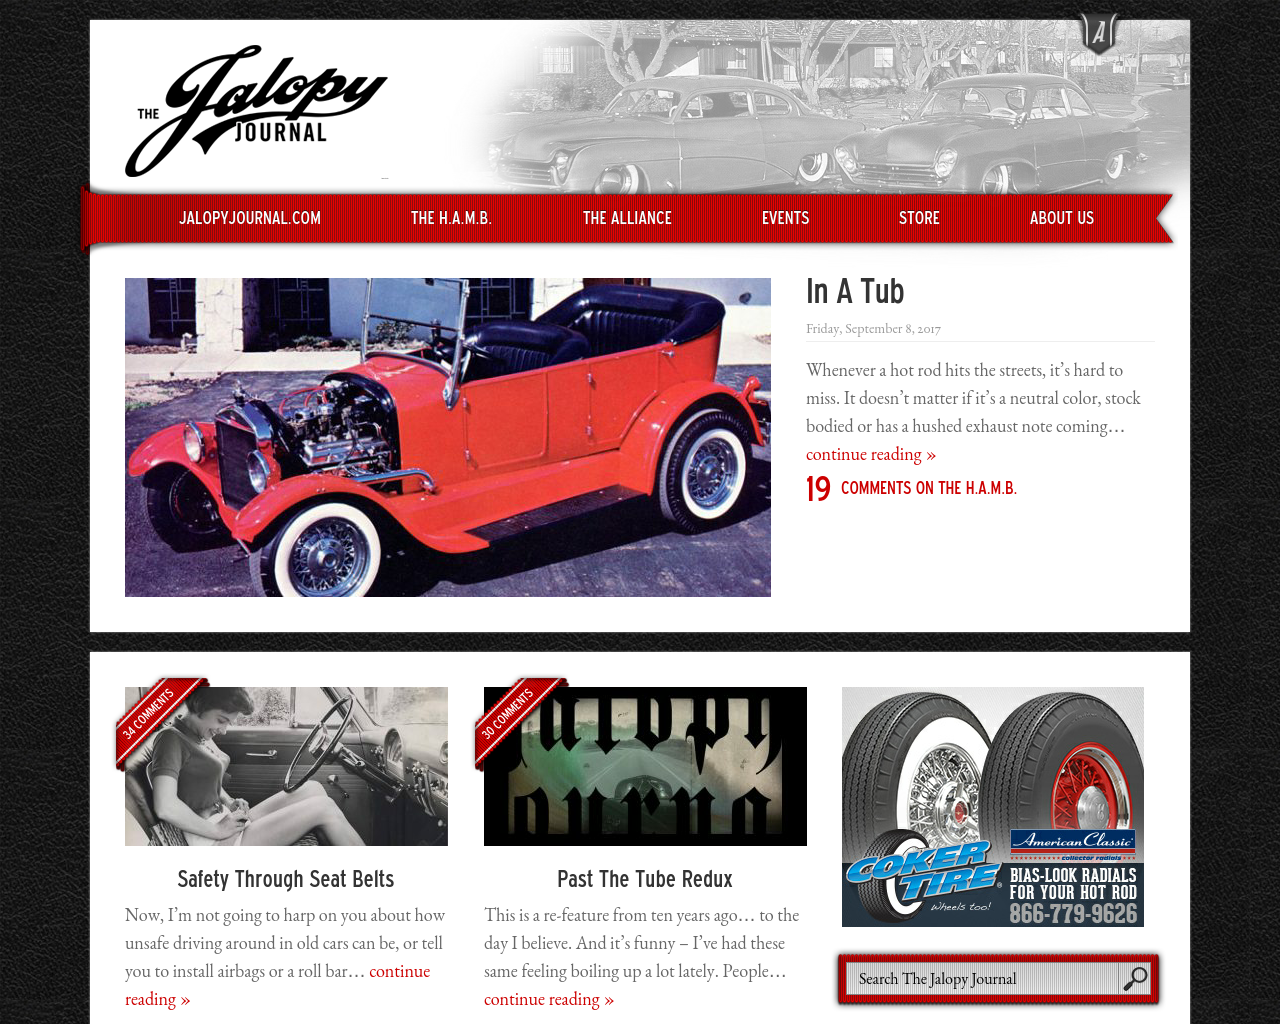 The-Jalopy-Journal-Advertising-Reviews-Pricing